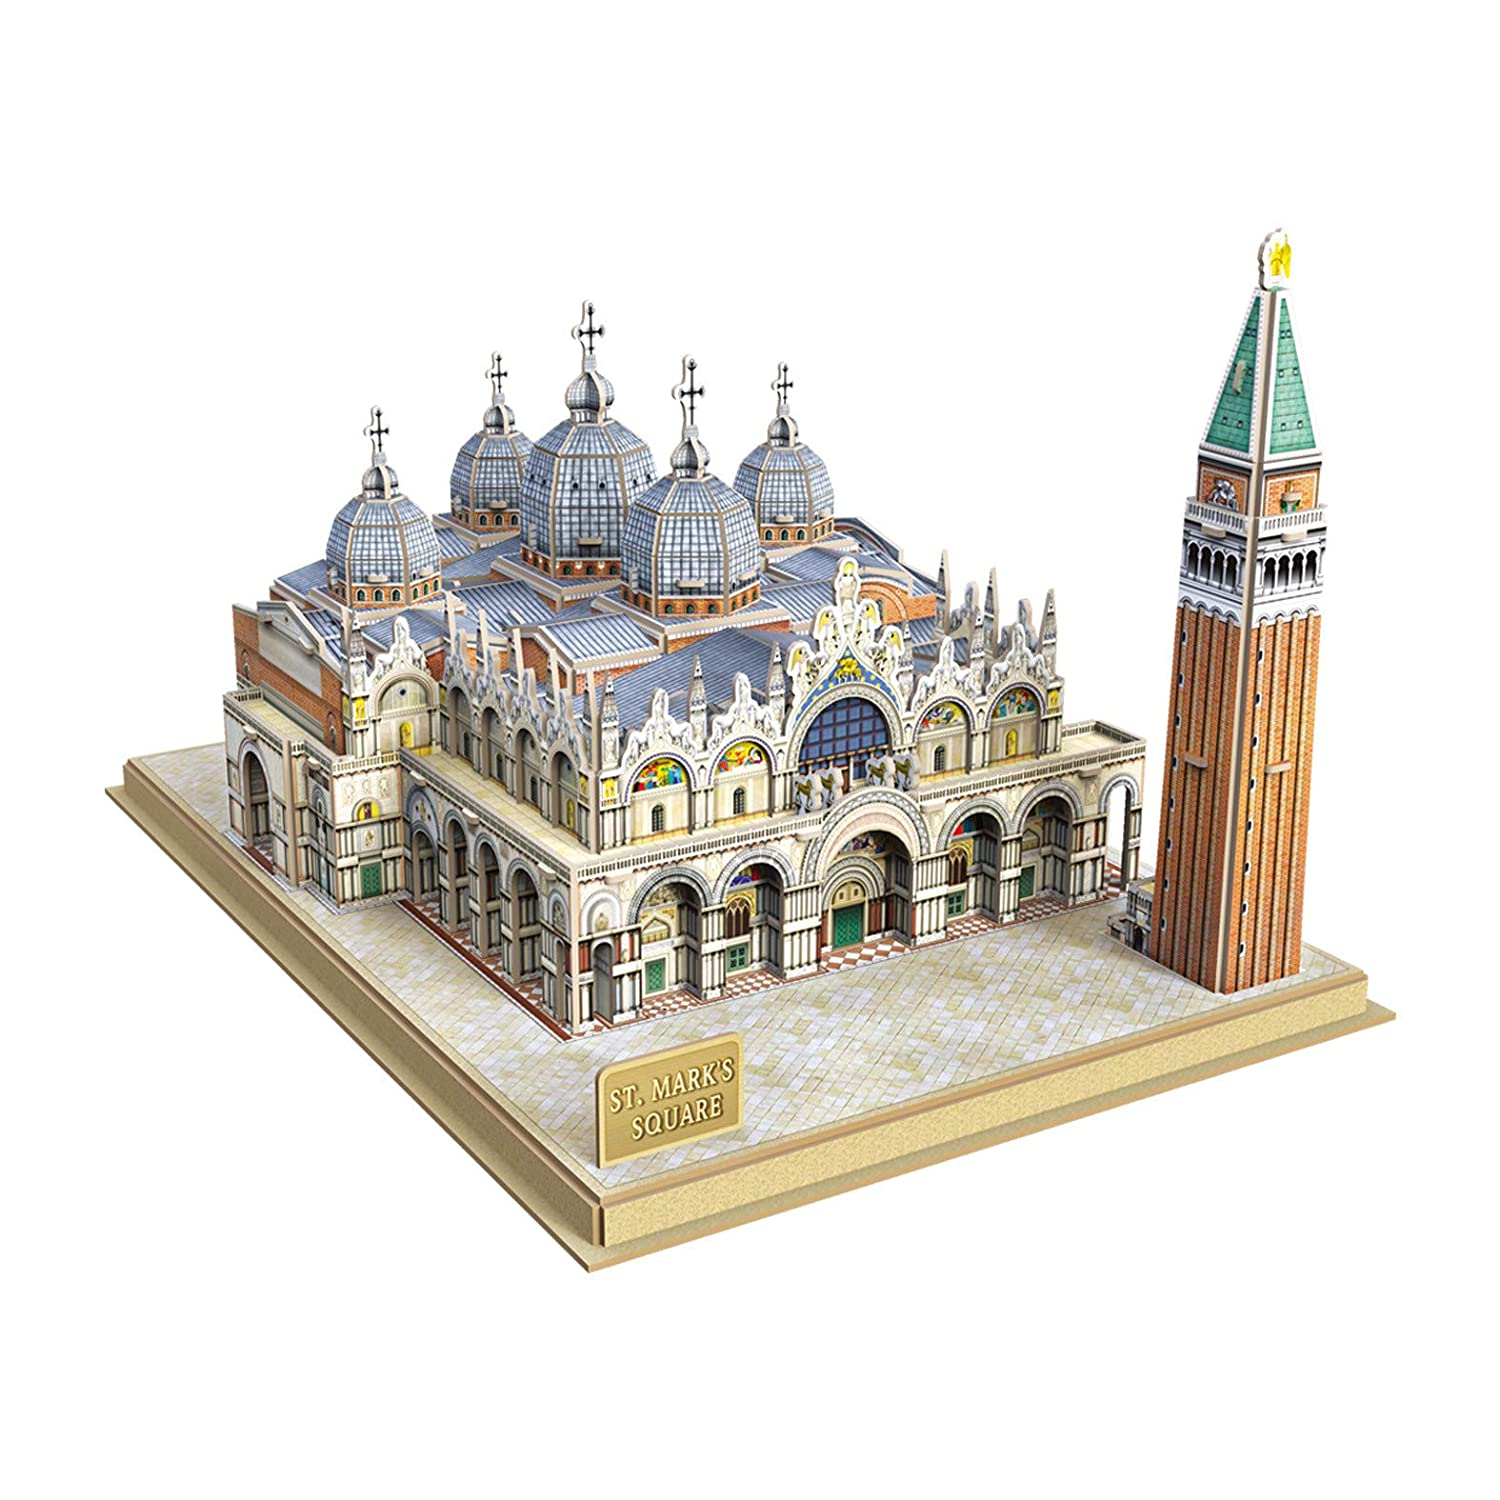 CubicFun-National Geographic Colosseum 3D Model Puzzle Kits Toy with Booklet, DS0976h